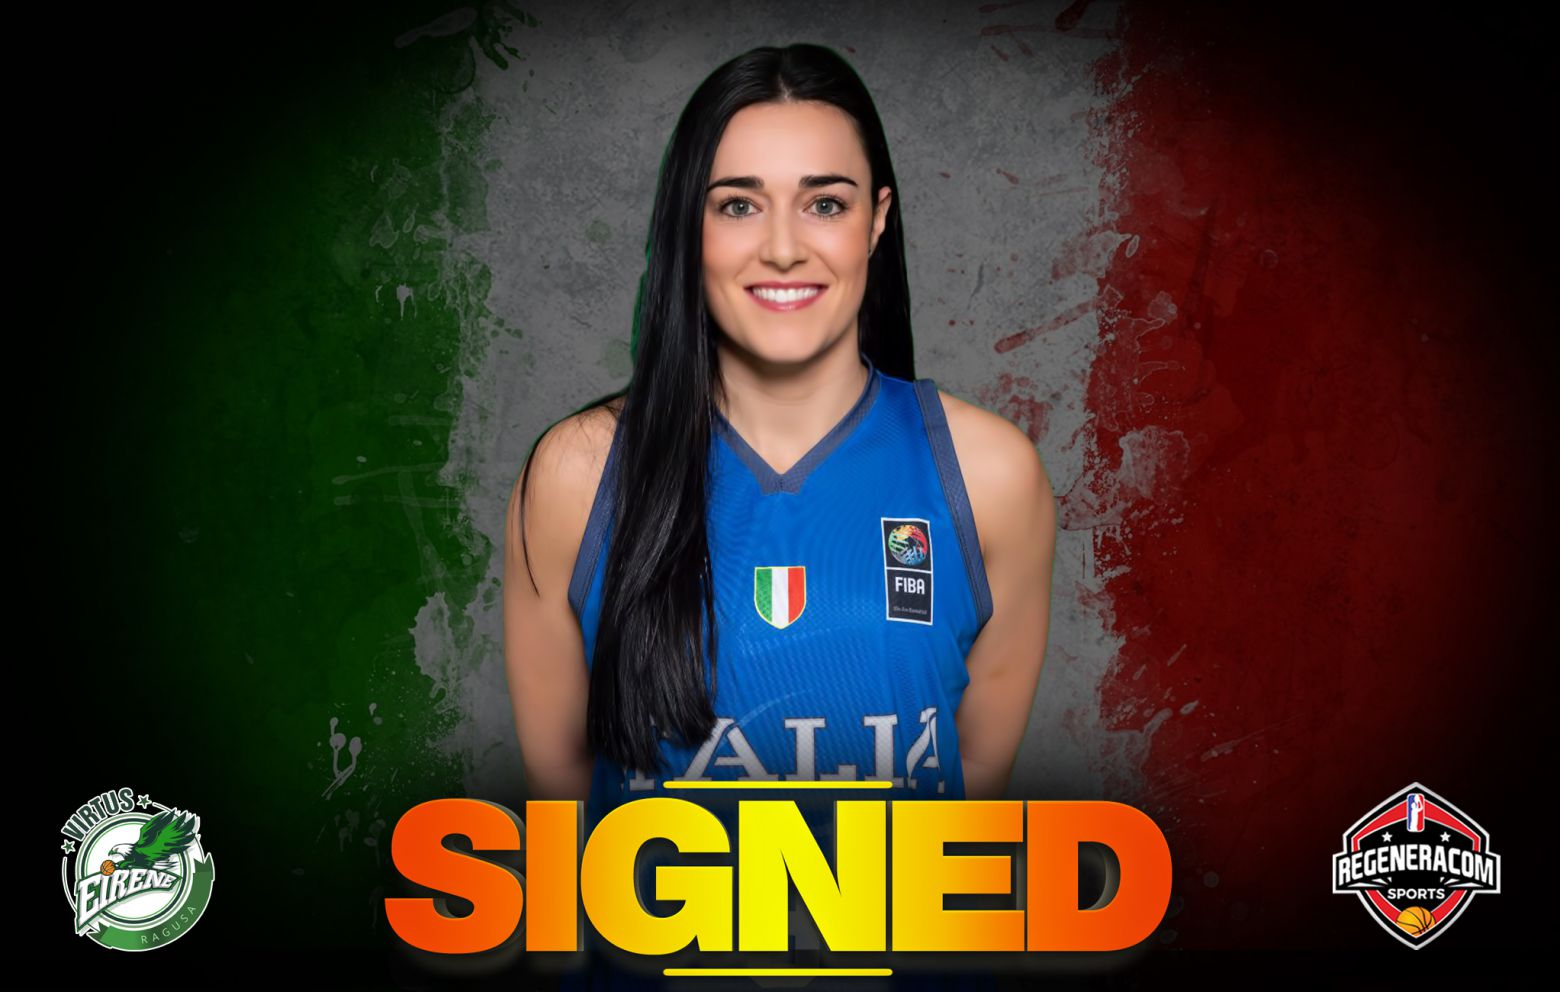 NICOLE ROMEO will play for Ragusa in the 2020/21 season